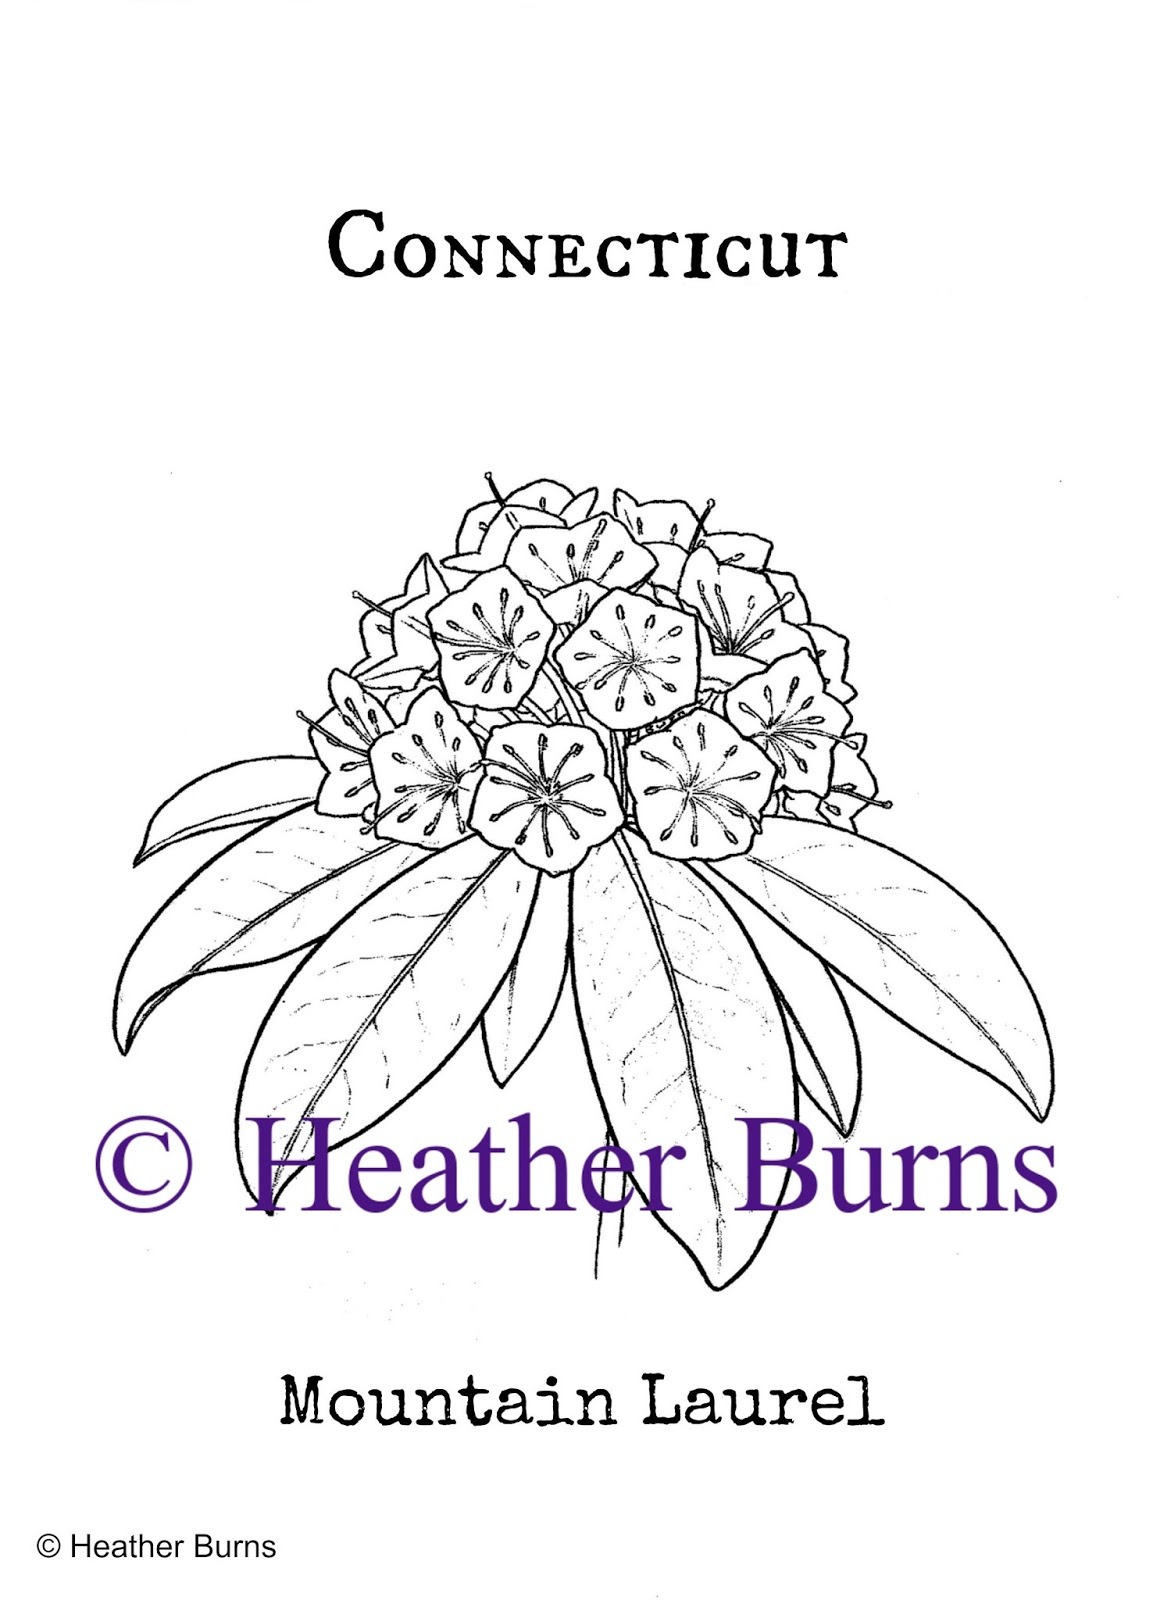 State Flower Coloring Book  Connecticut State Flower  Mountain Laurel